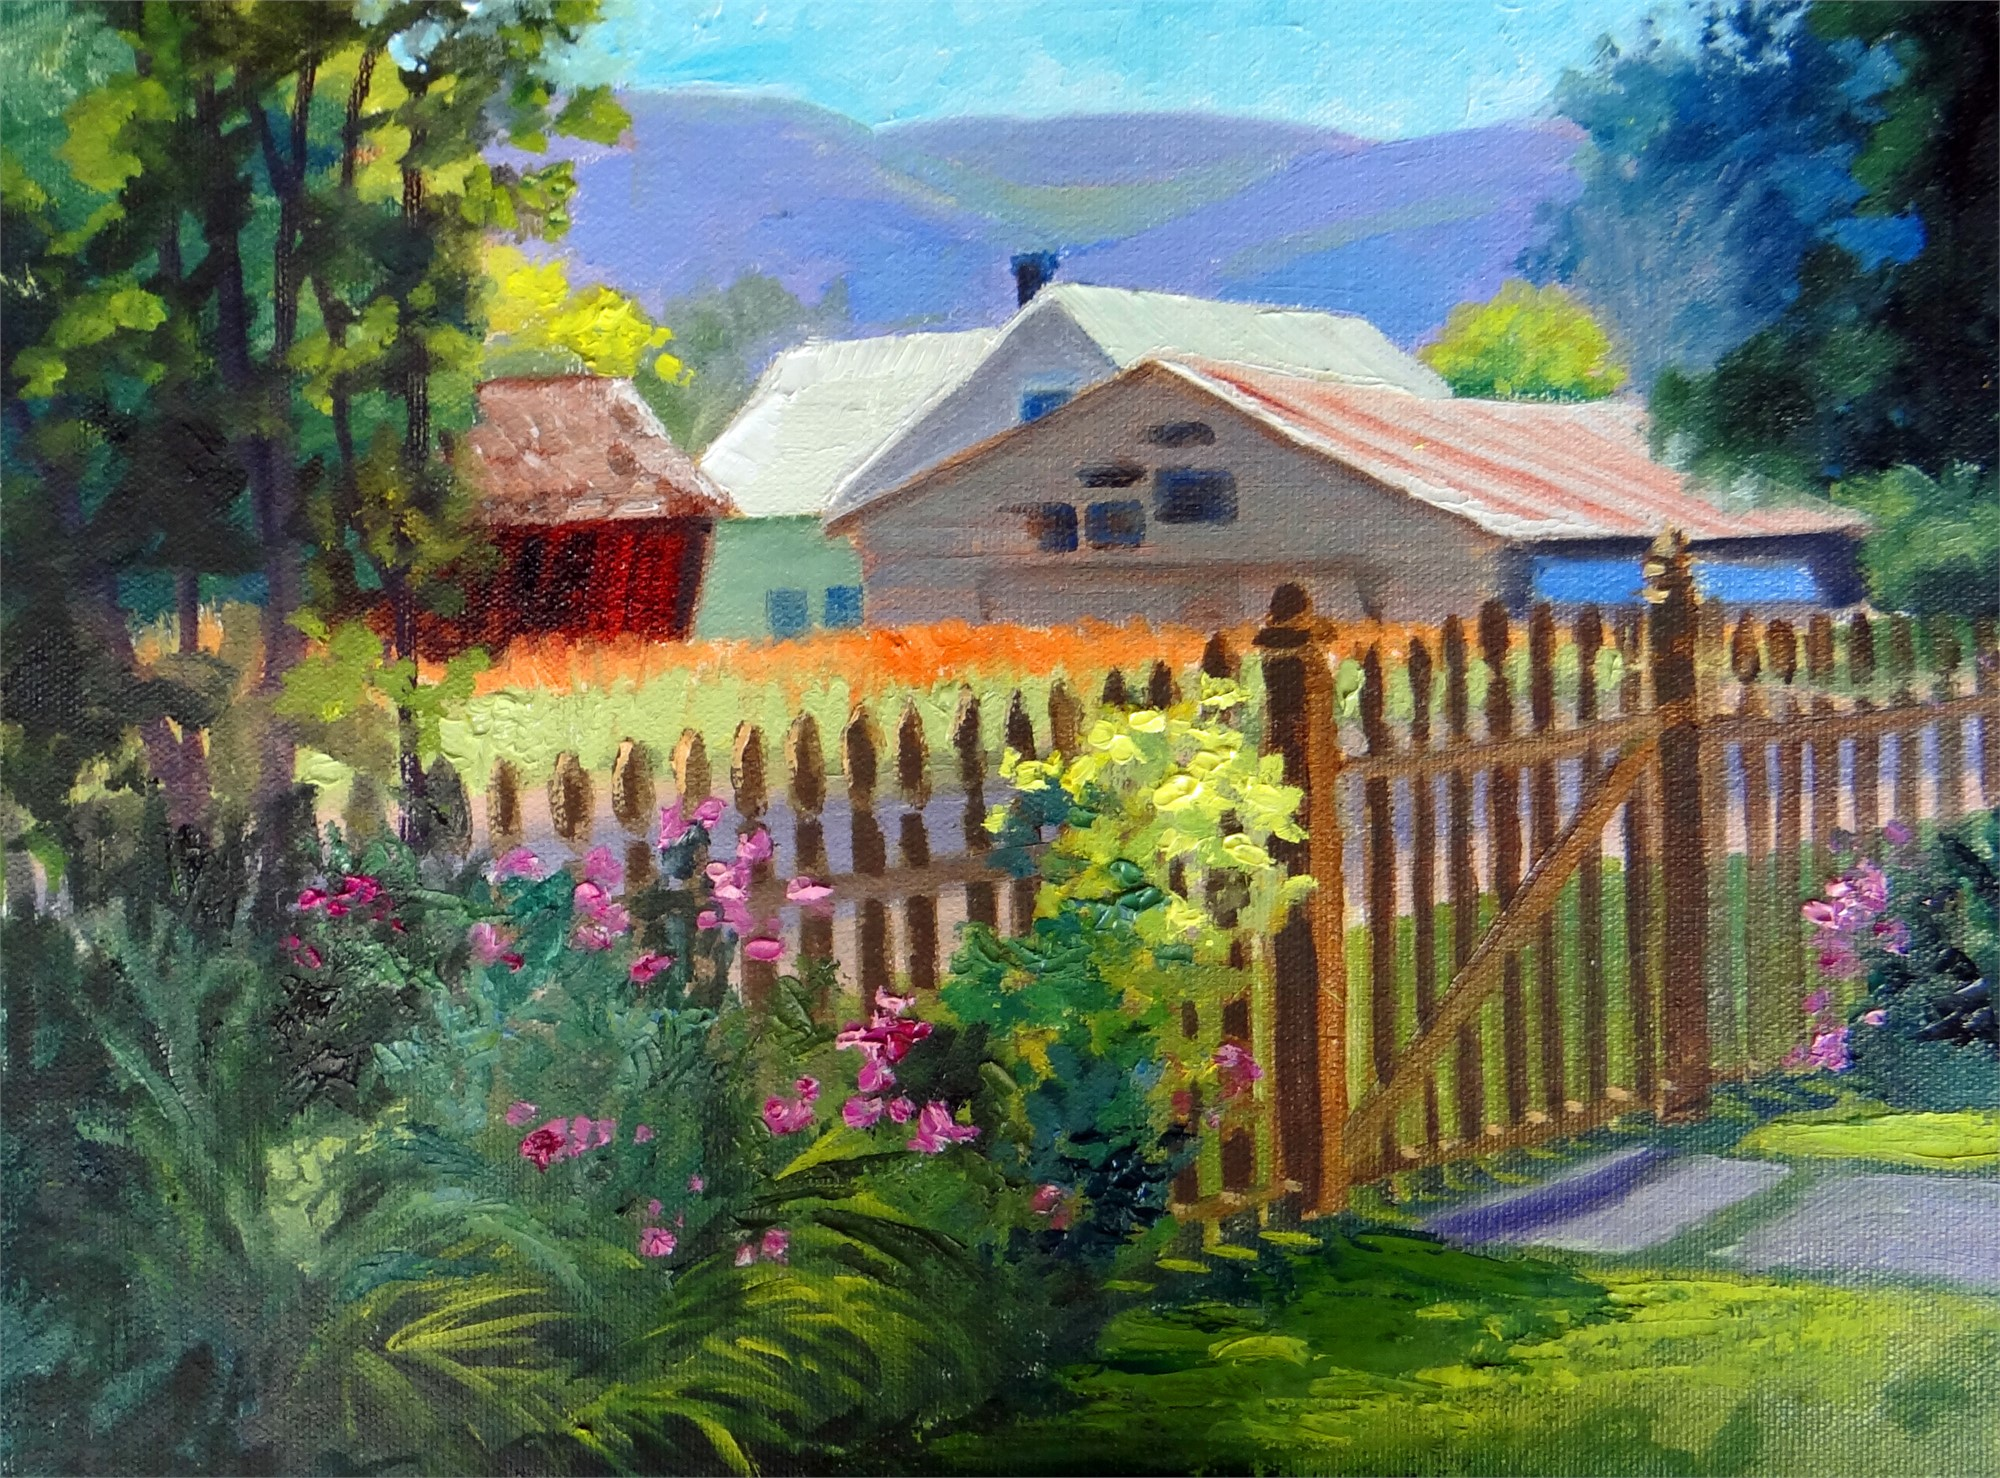 Little Picket Fence, 10/7/16 by Nancy Paris Pruden